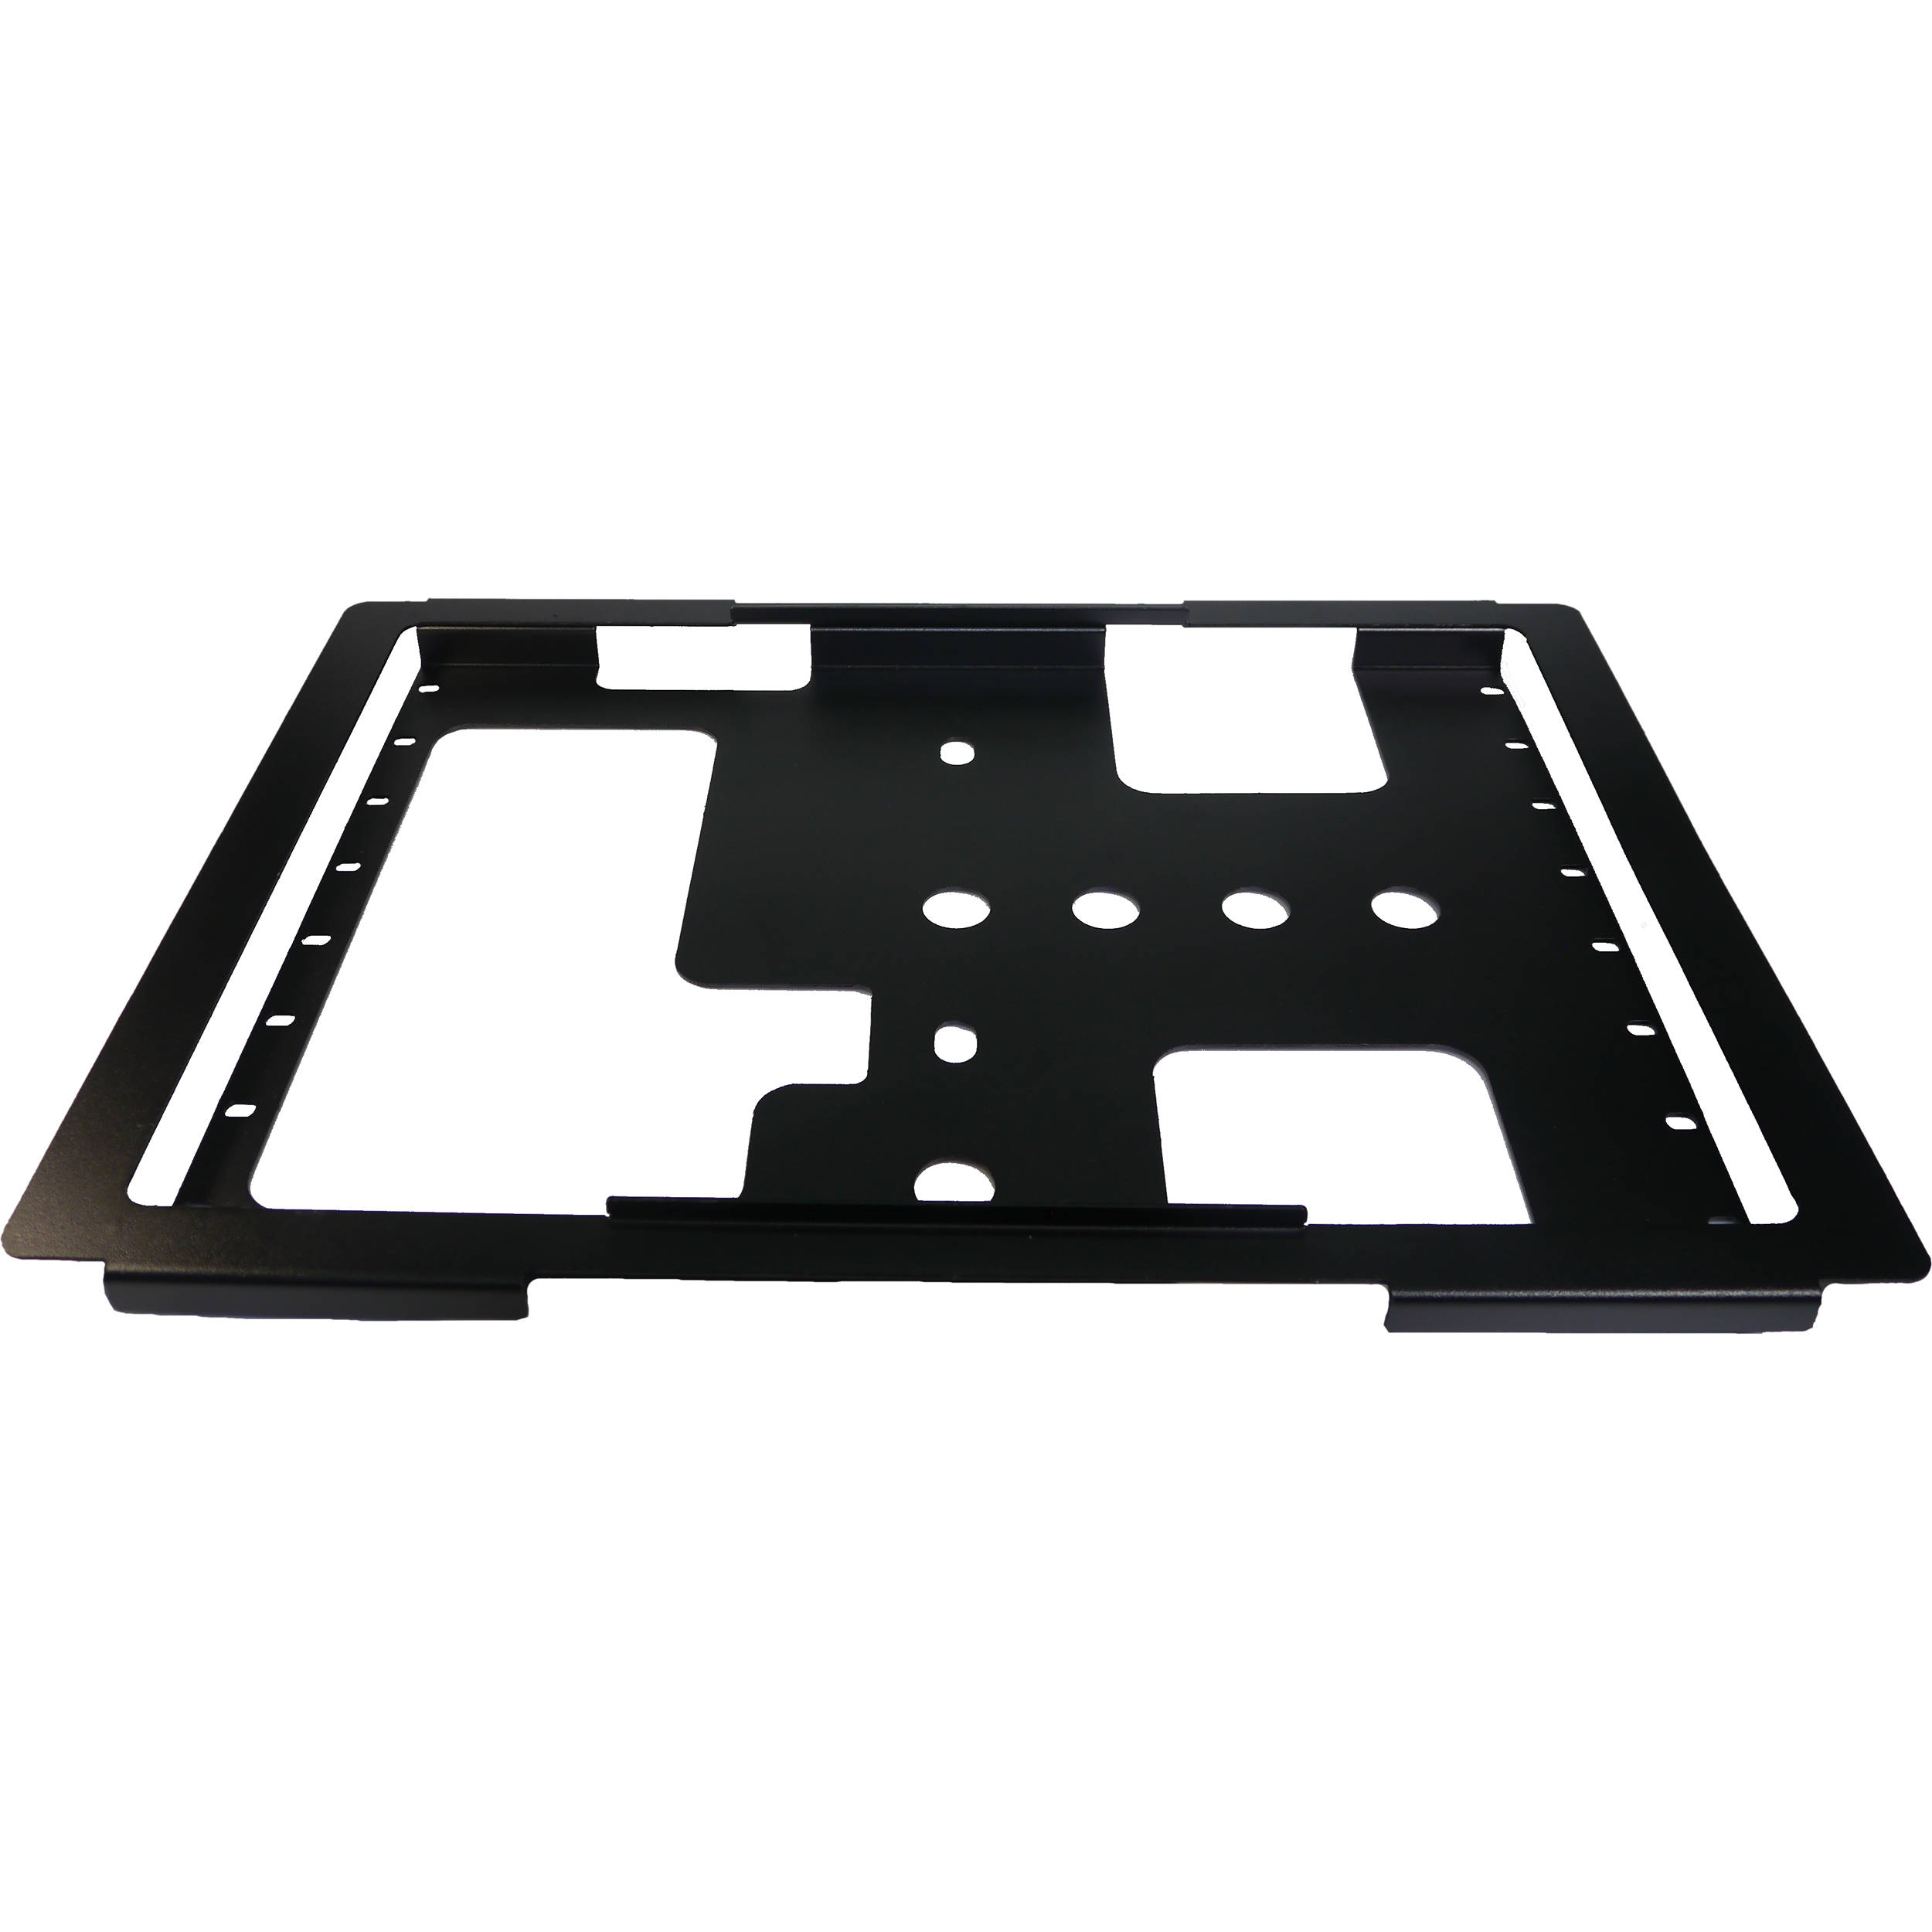 Https C Product 1287174 Reg Hercules Super Mini Battery Eliminator Circuit G2 Bon Rmk 24 N Rack Mount Kit Single 1345851